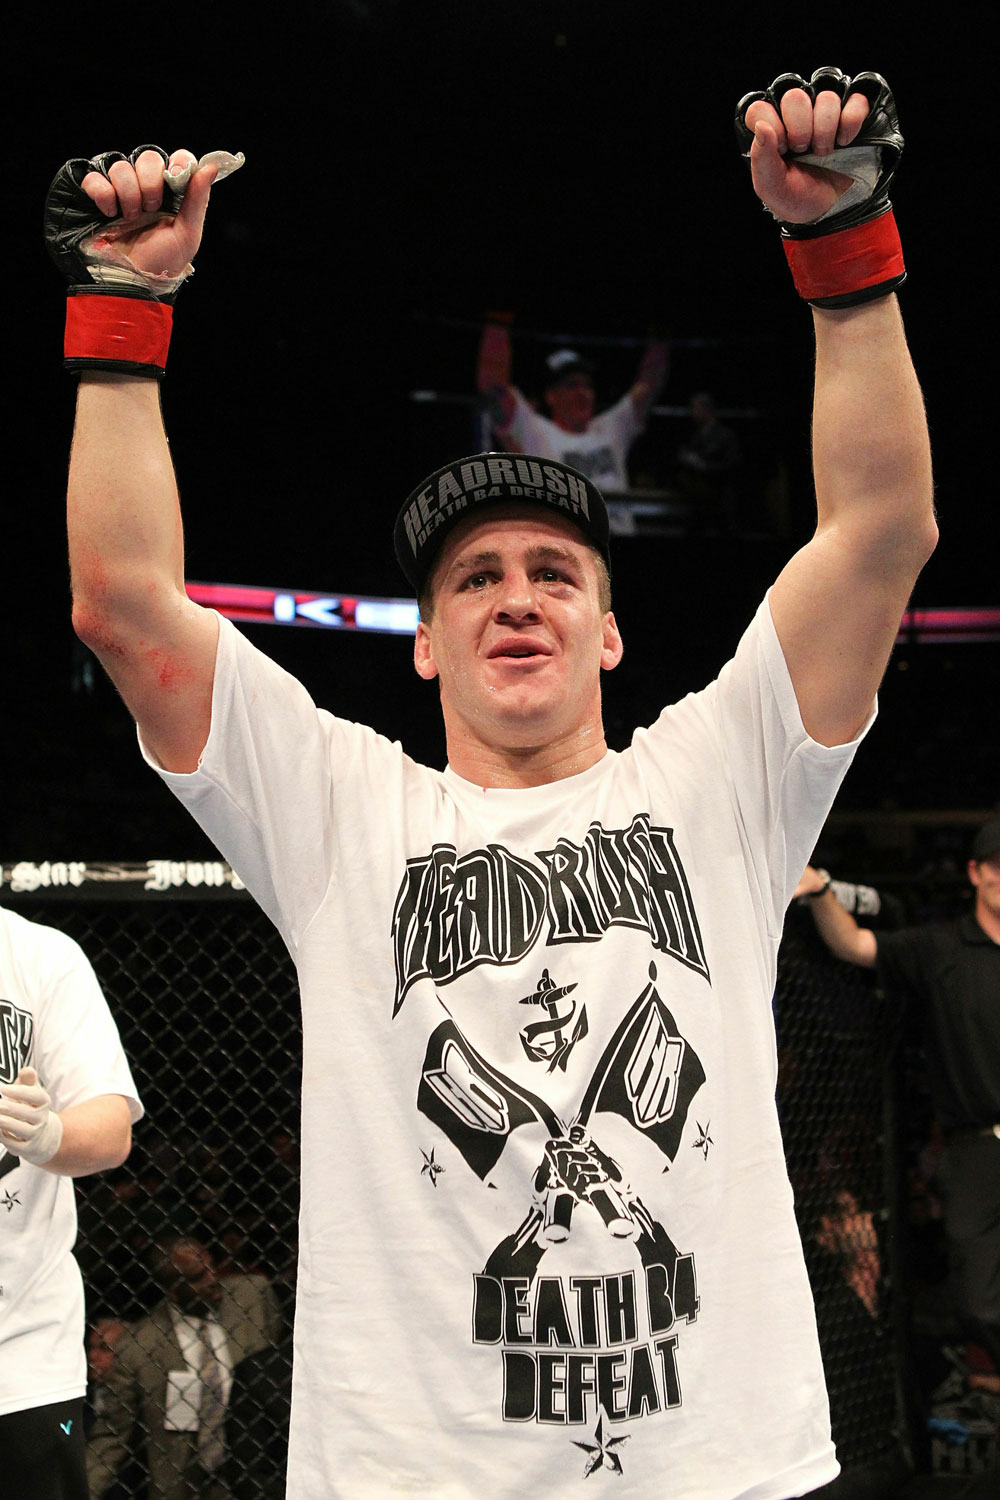 Paul Kelly celebrates his win over TJ O&#39;Brien during UFC 123